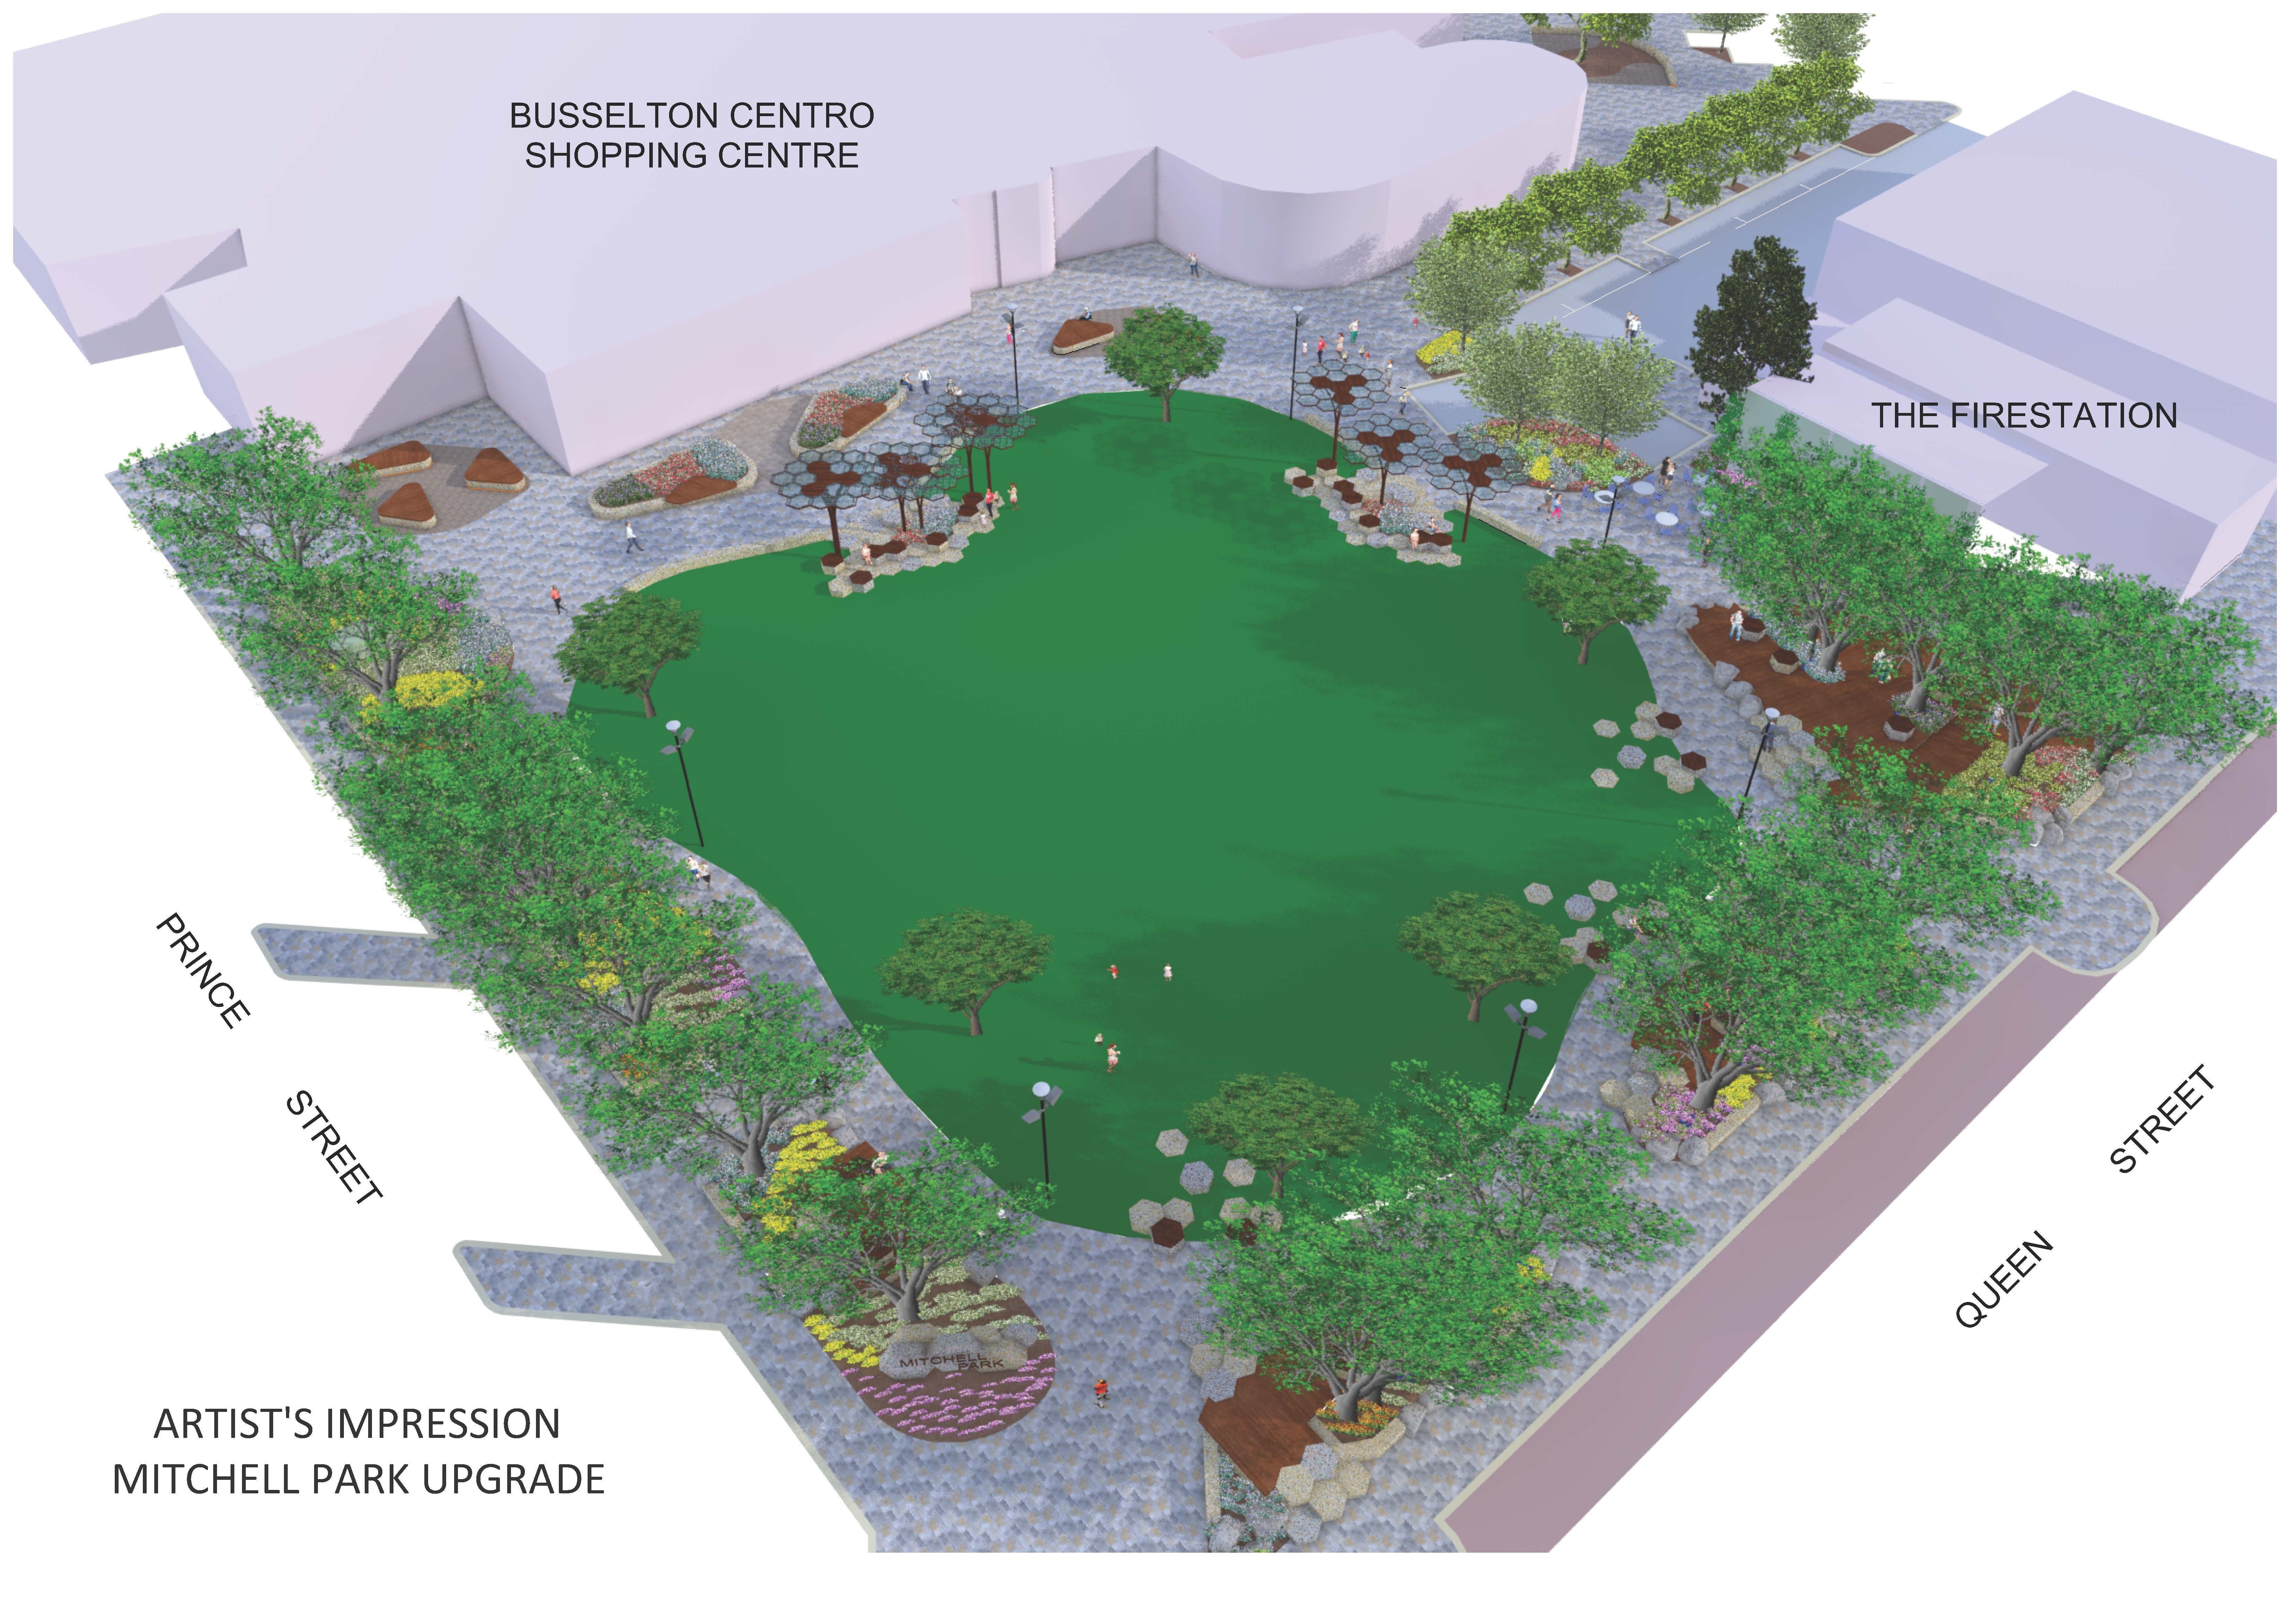 CAMERA N OVERALL PARK FROM QUEEN 6.6.20 v2020 - ARTISTS IMPRESSION.jpg